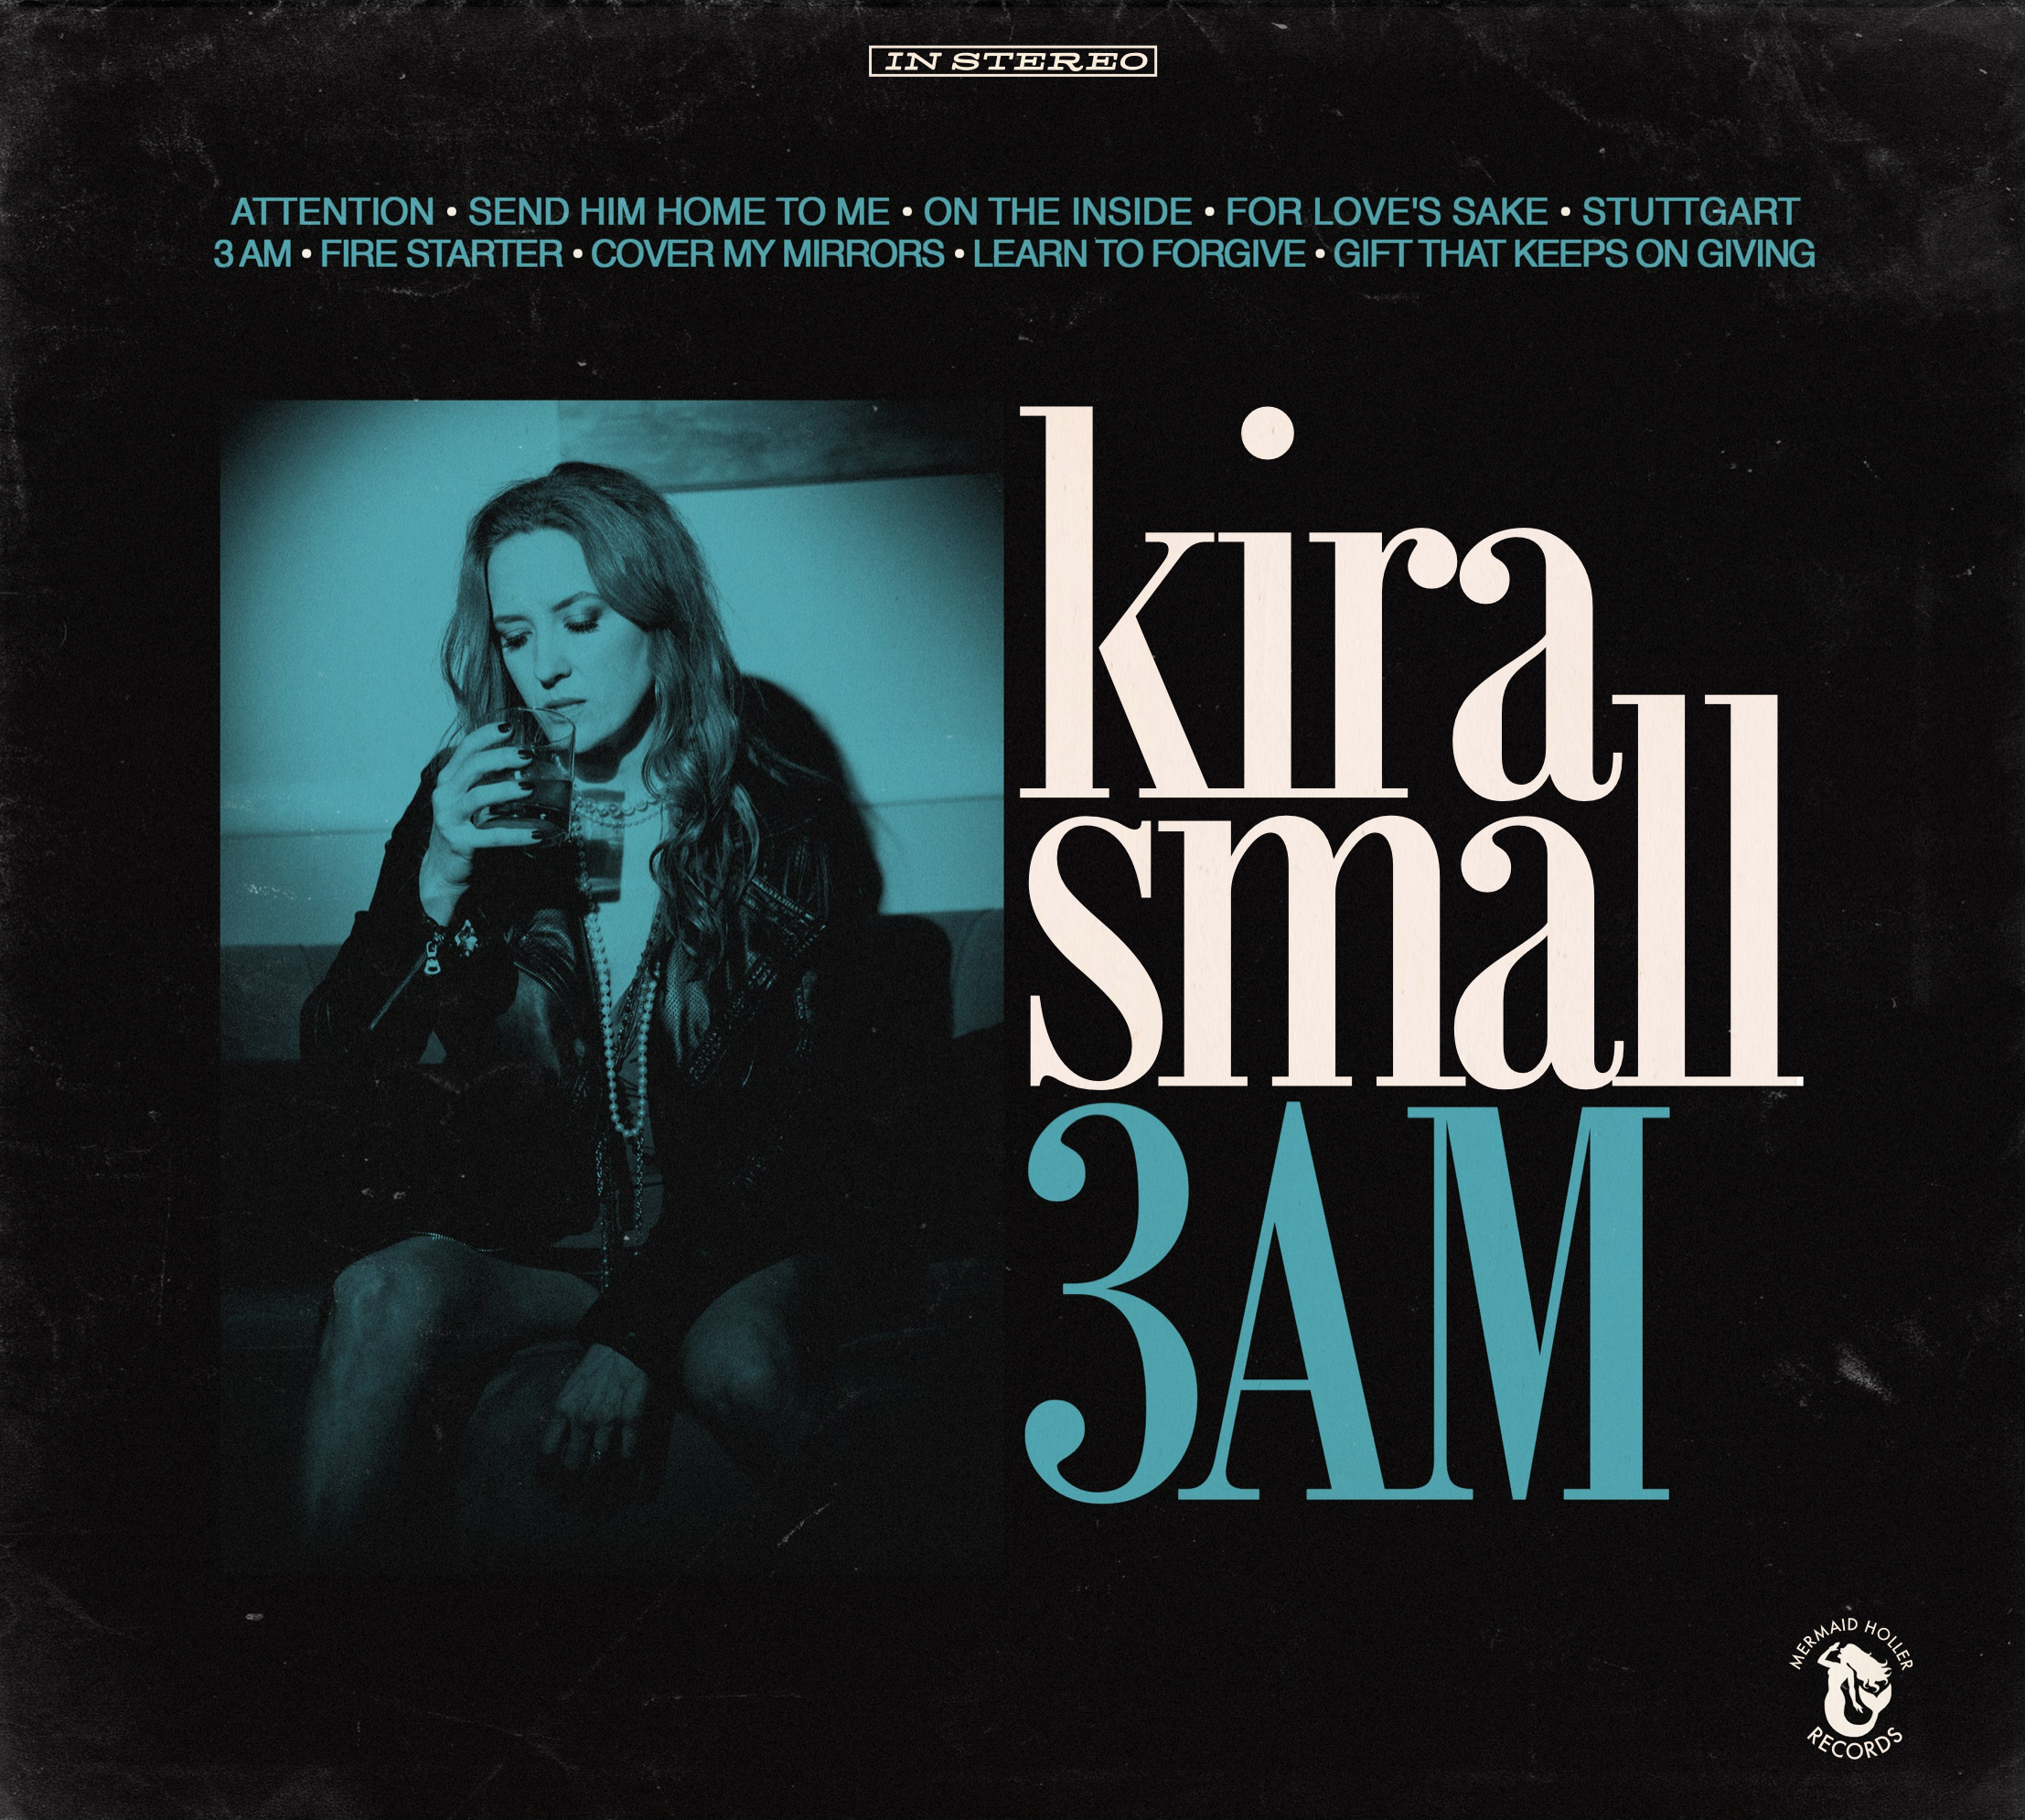 Official cover artwork for 3AM.